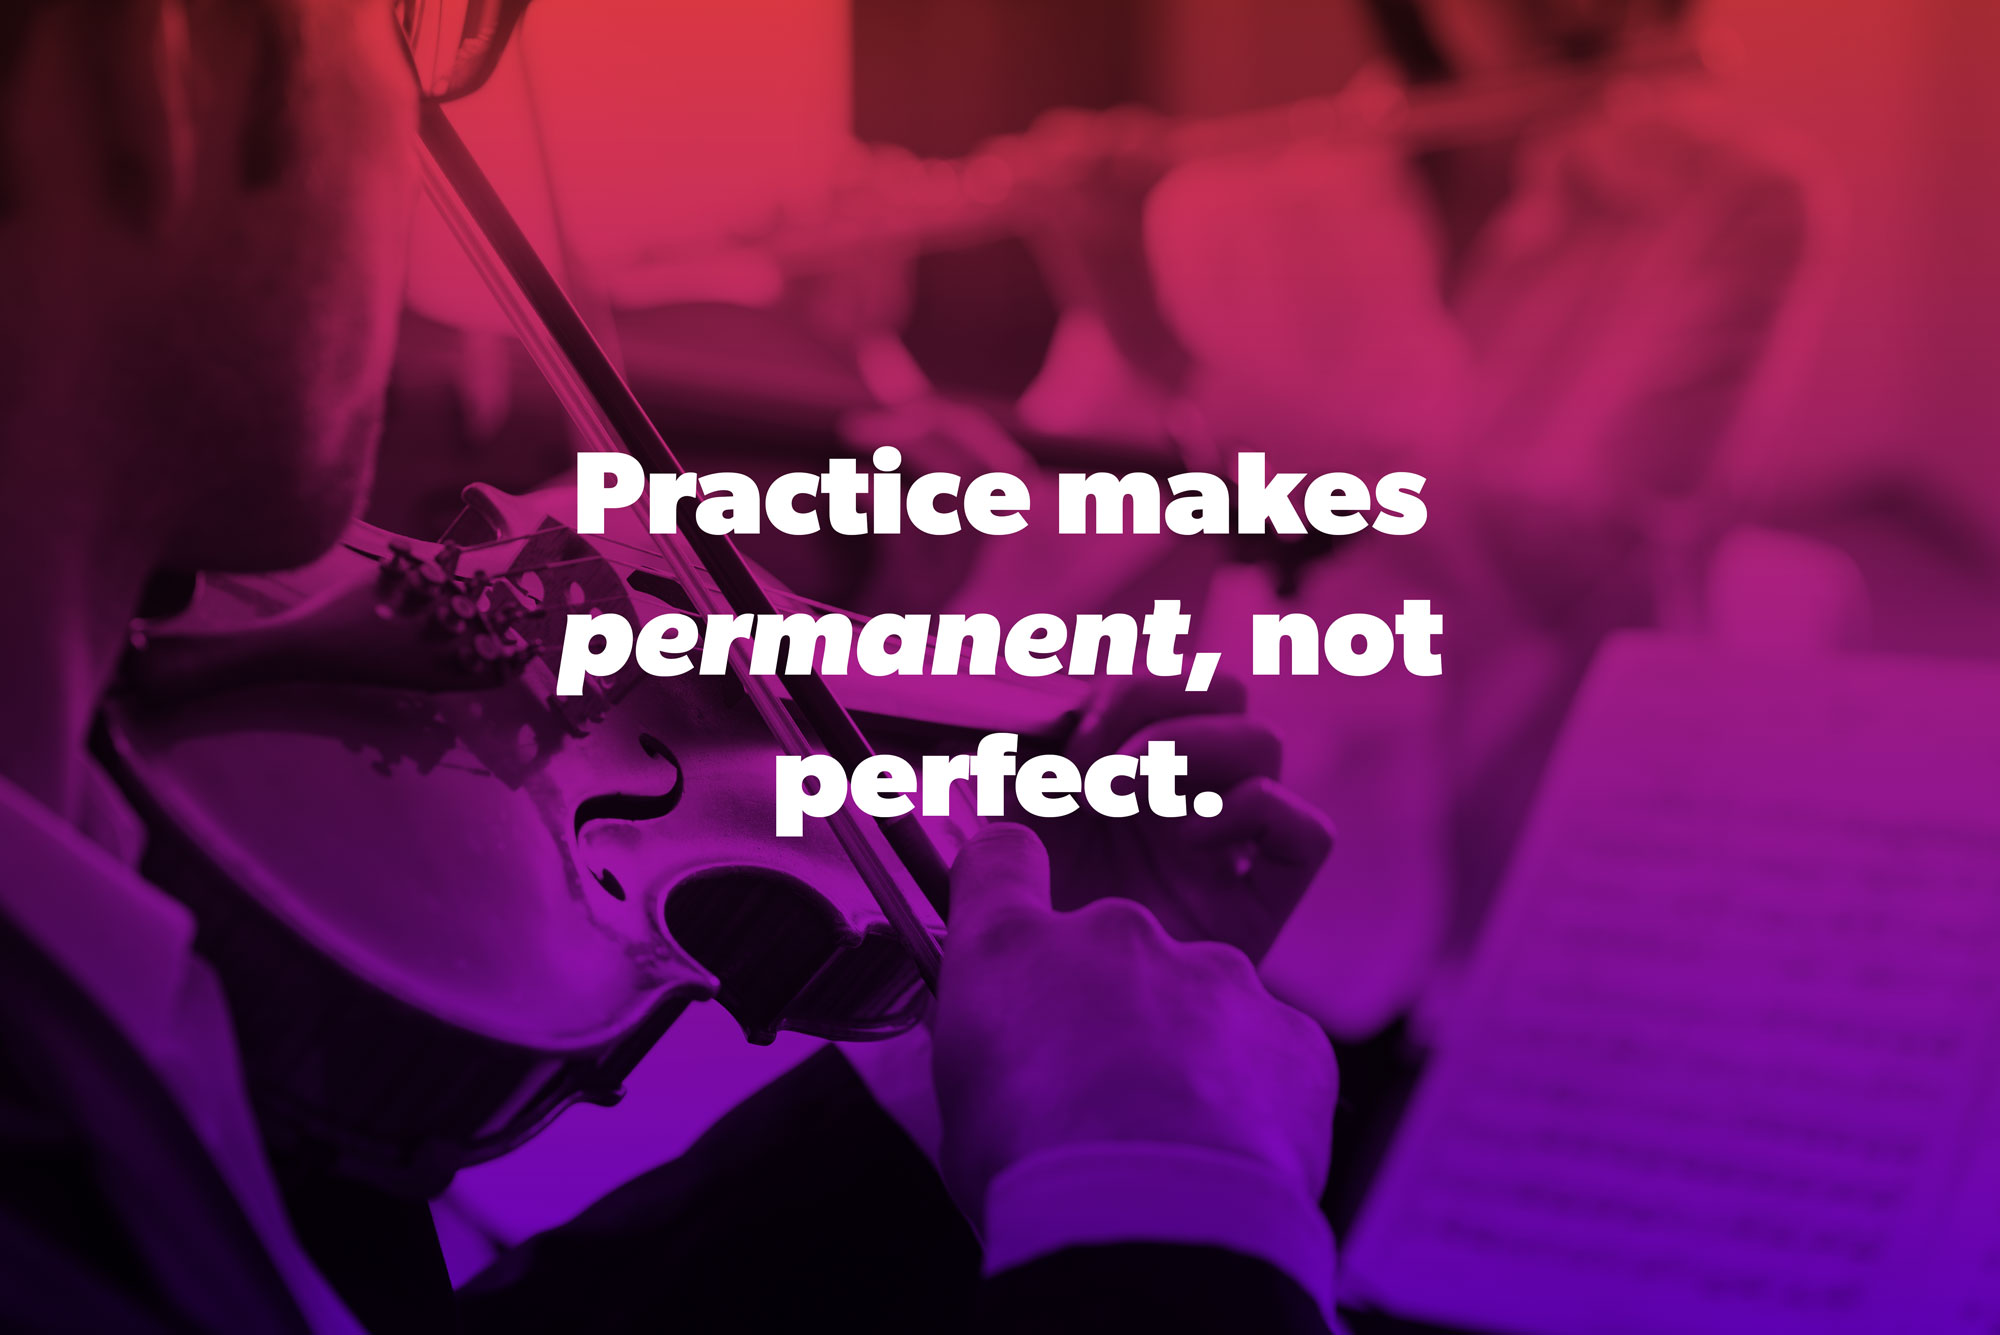 practice makes permanent, not perfect